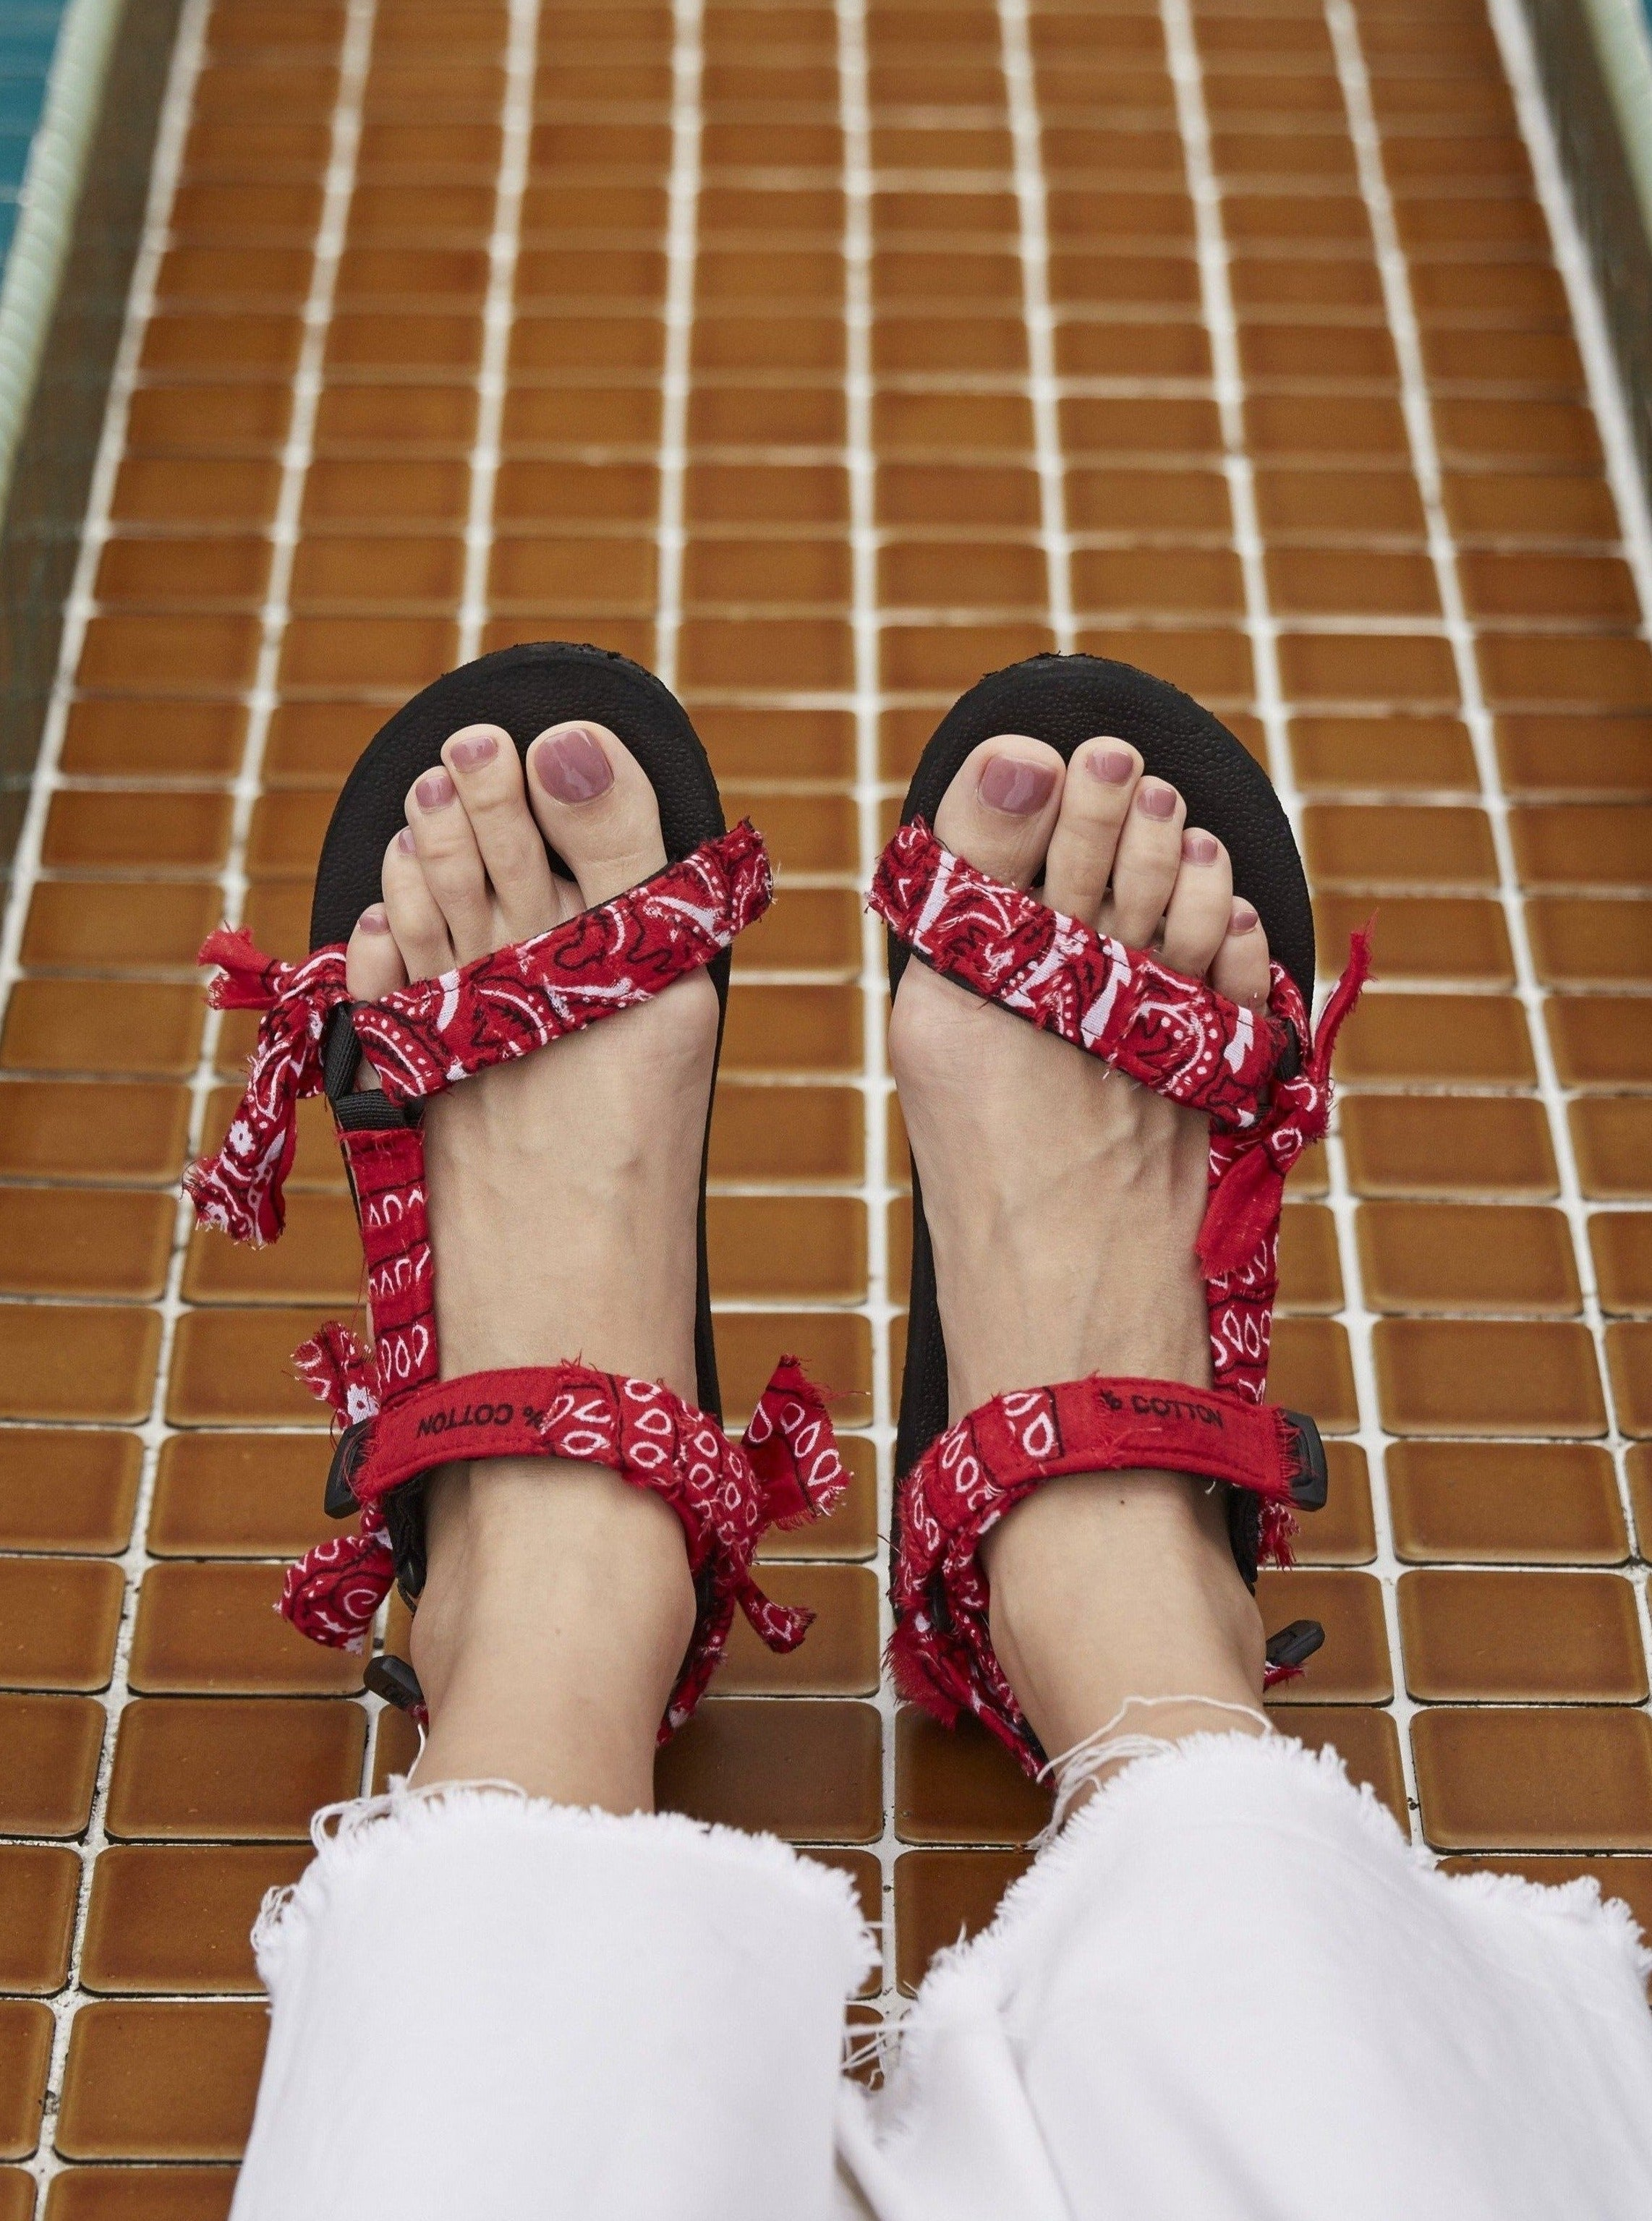 JaeDals, Sandals, Made in Singapore, Red Bandana, Give back, shoes, twinning sandals, twinning